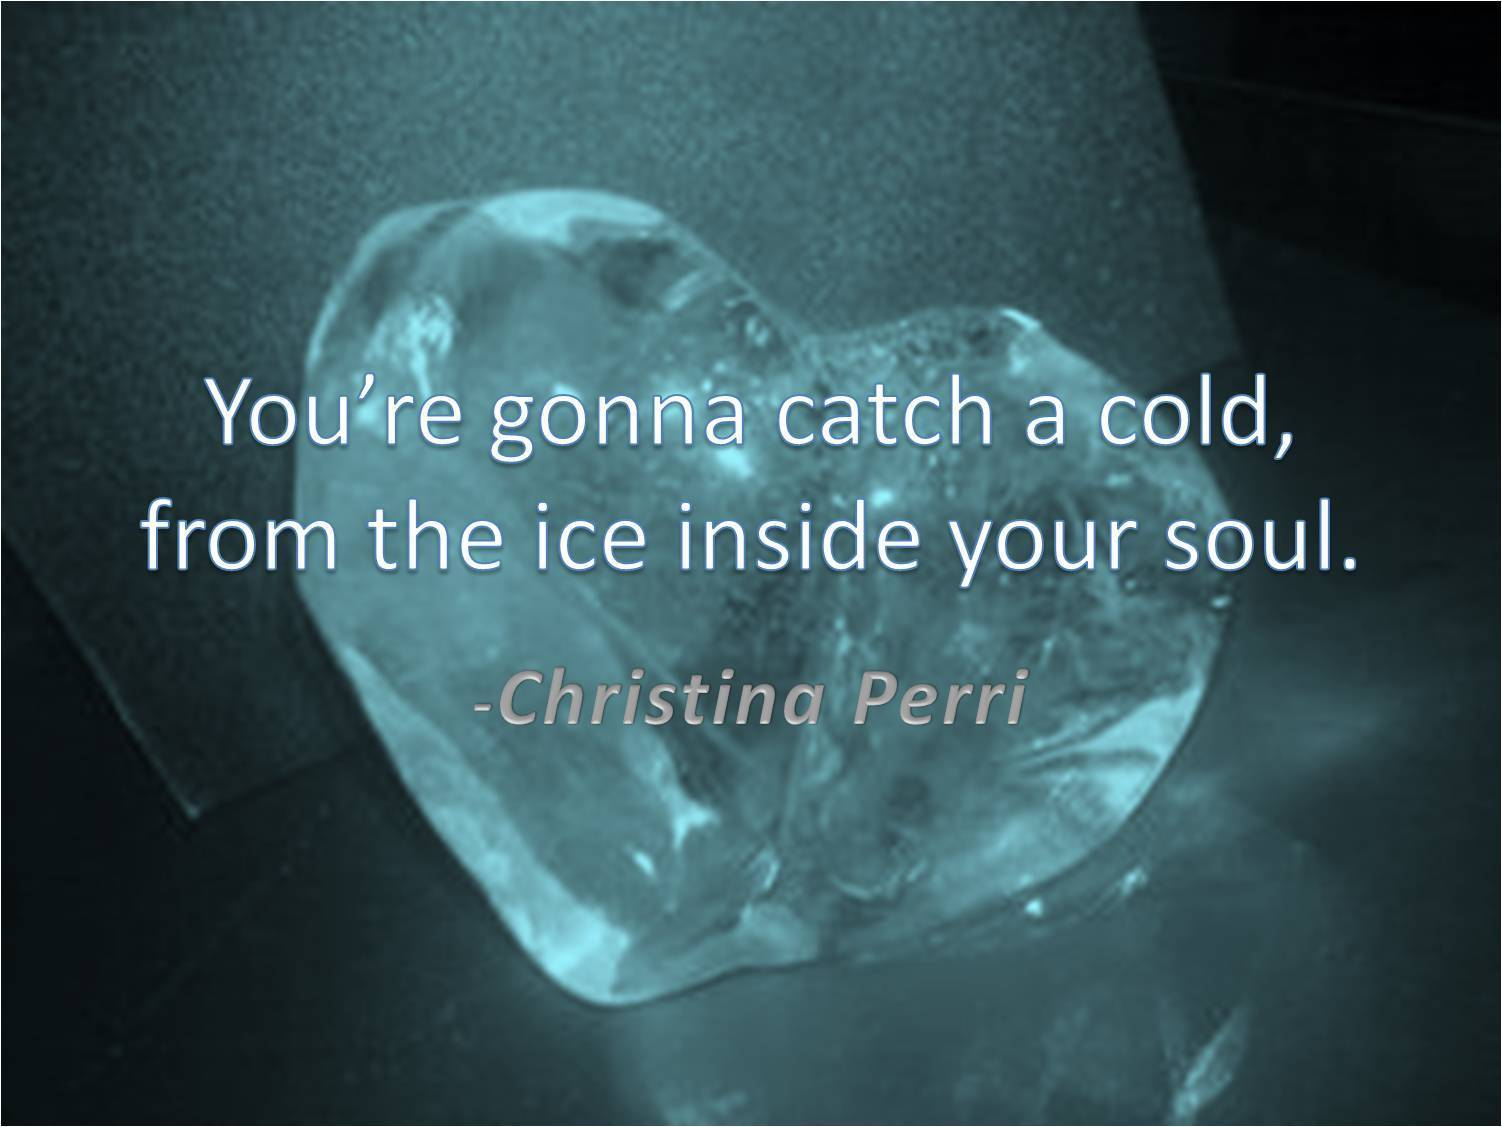 Funny Pictures Gallery: Music quotes, 2011 music quotes ...